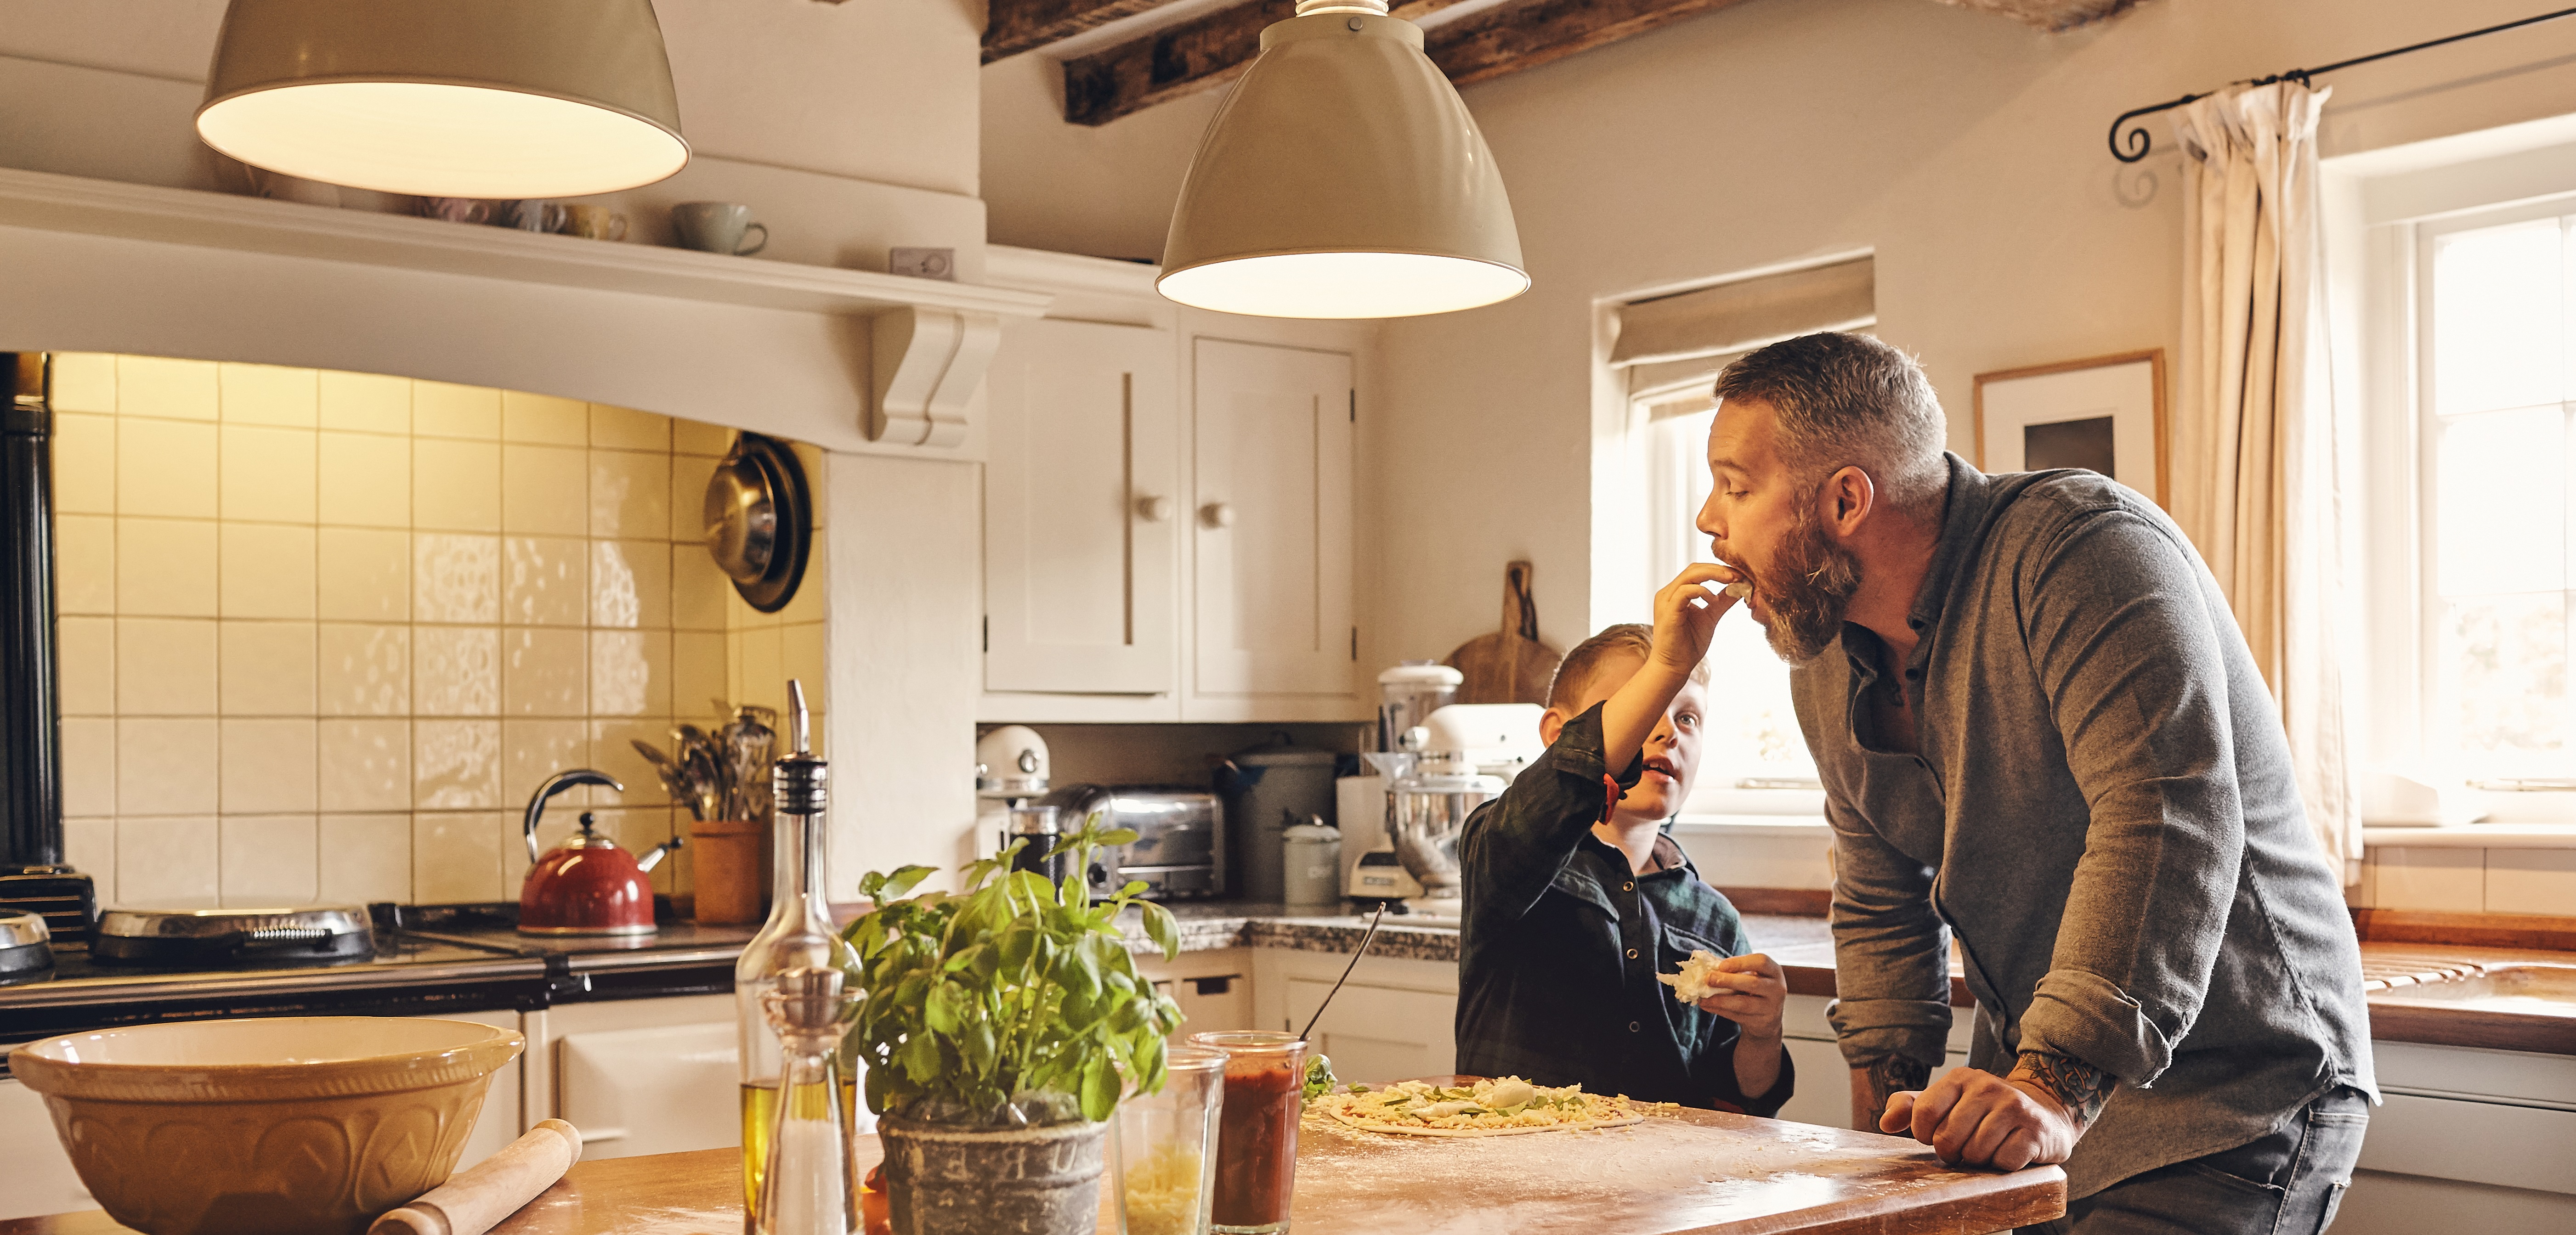 Son playfully feeding dad in kitchen